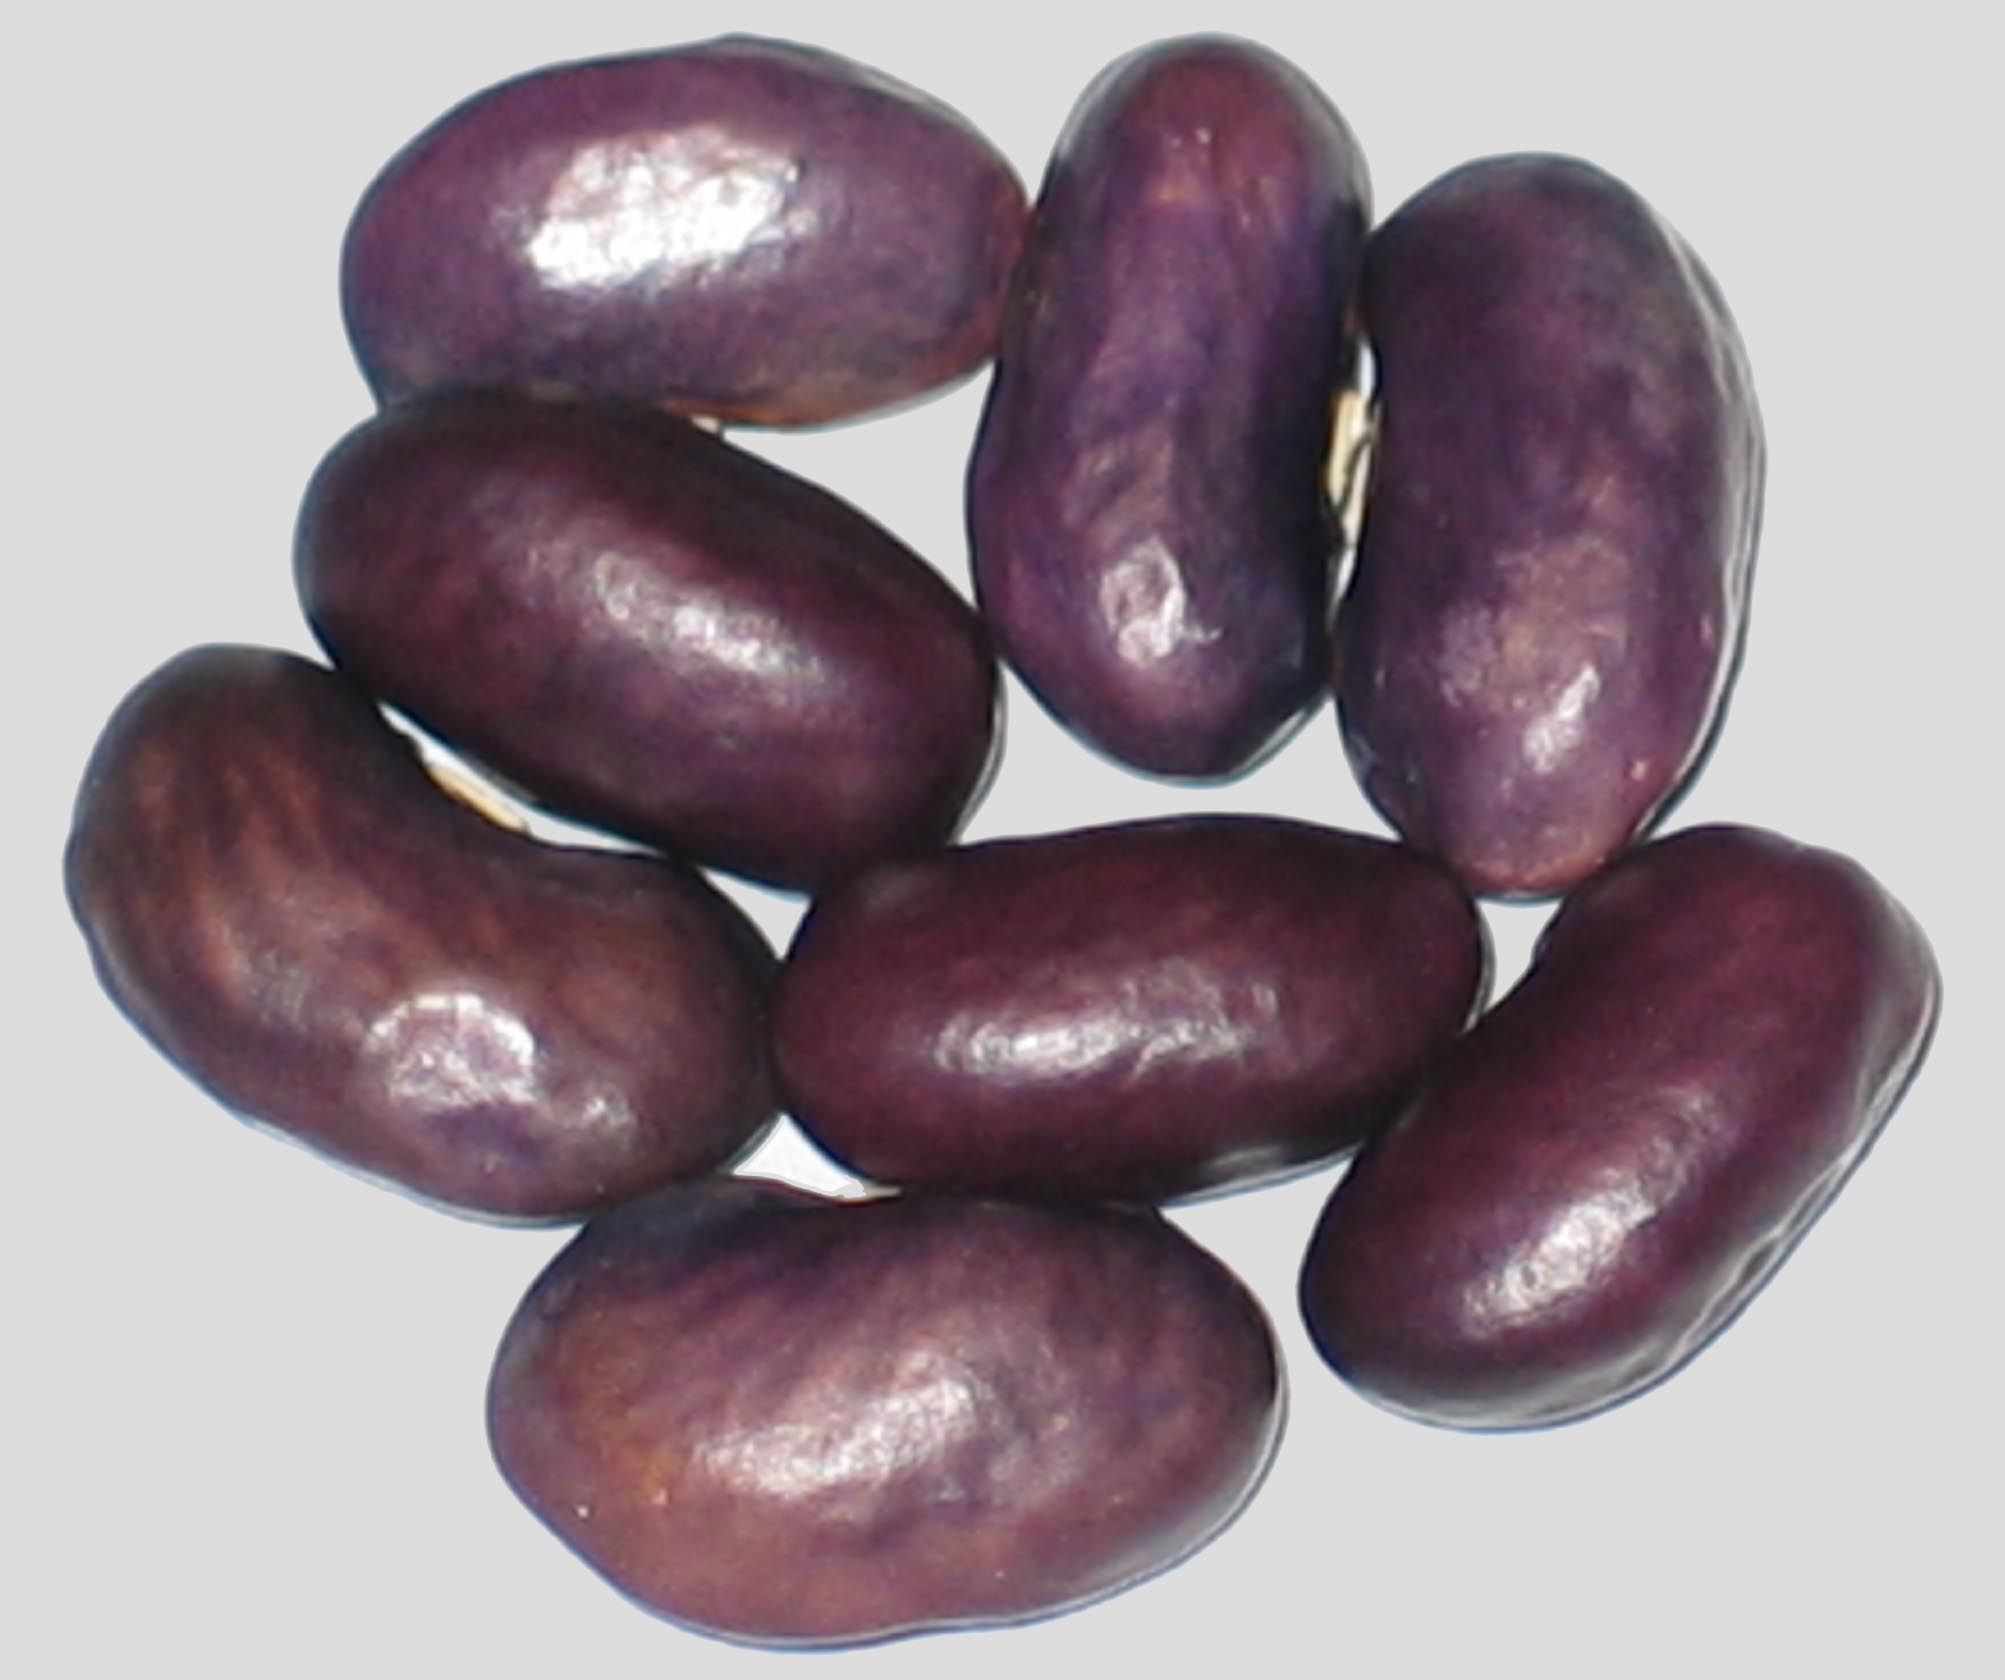 image of Tyra beans